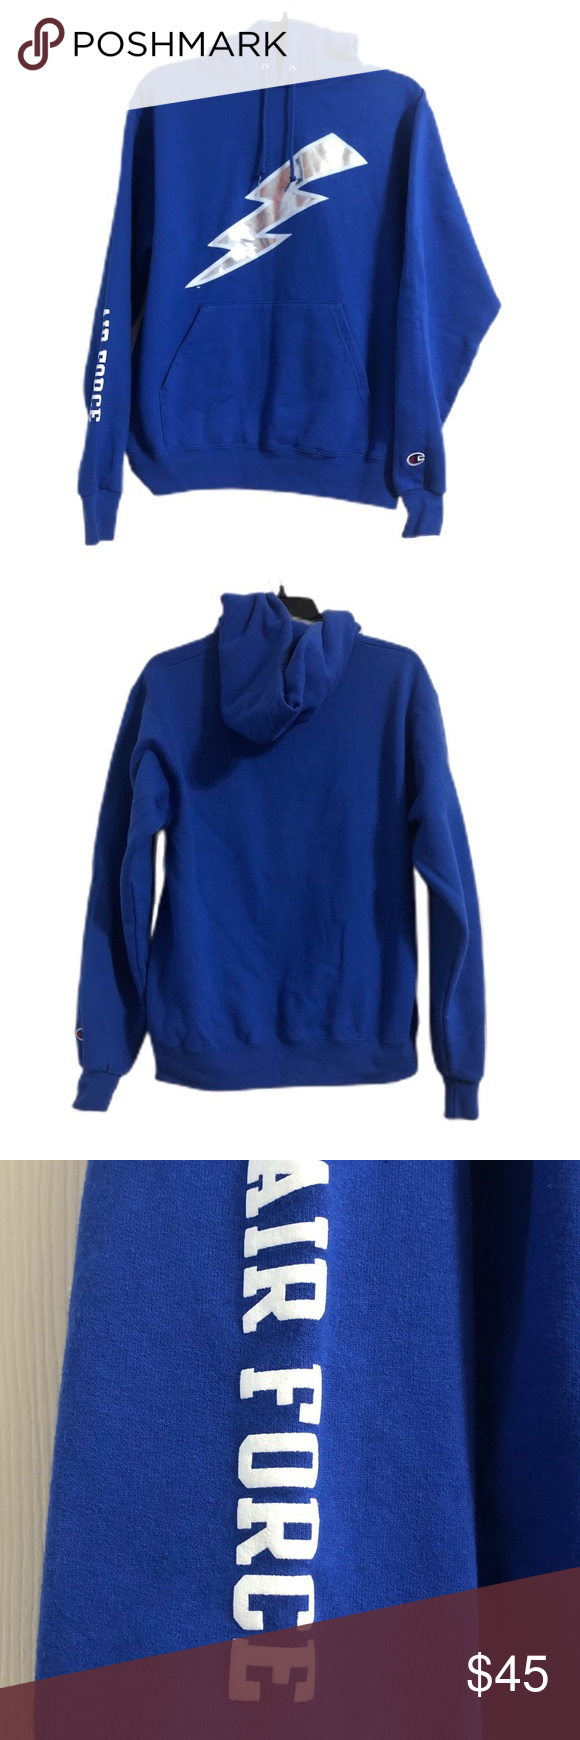 Champion Air Force Falcons Lightning Bolt Hoodie Size